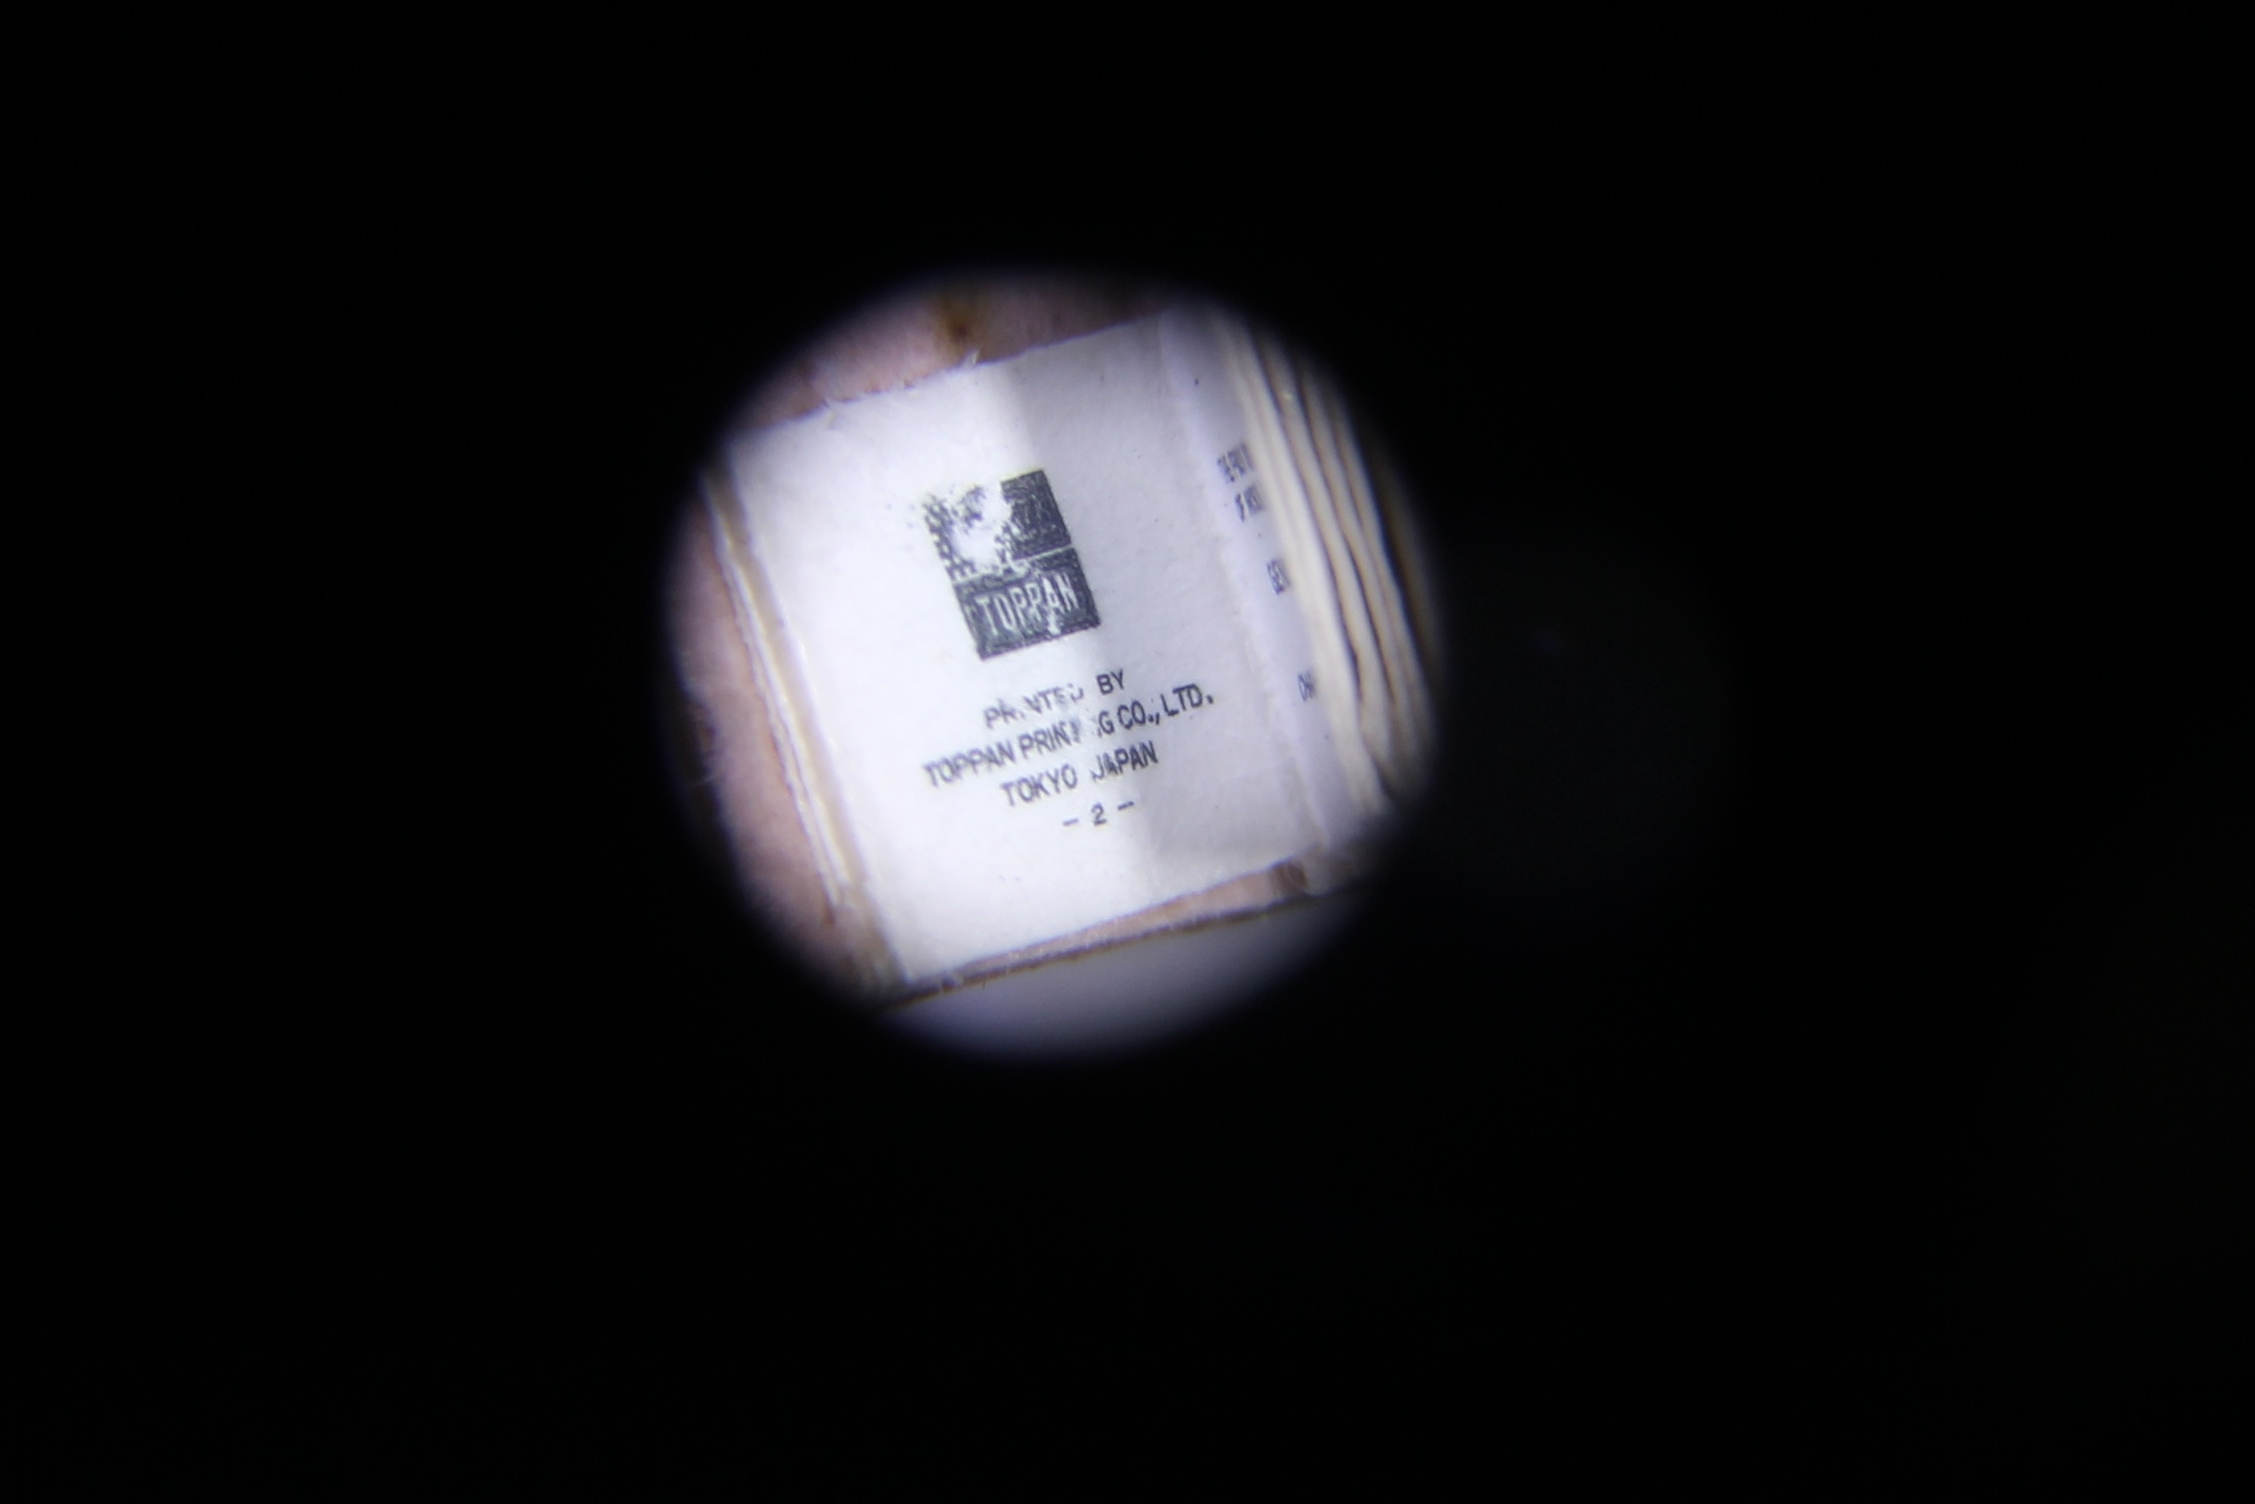 Microscope view of publisher's information